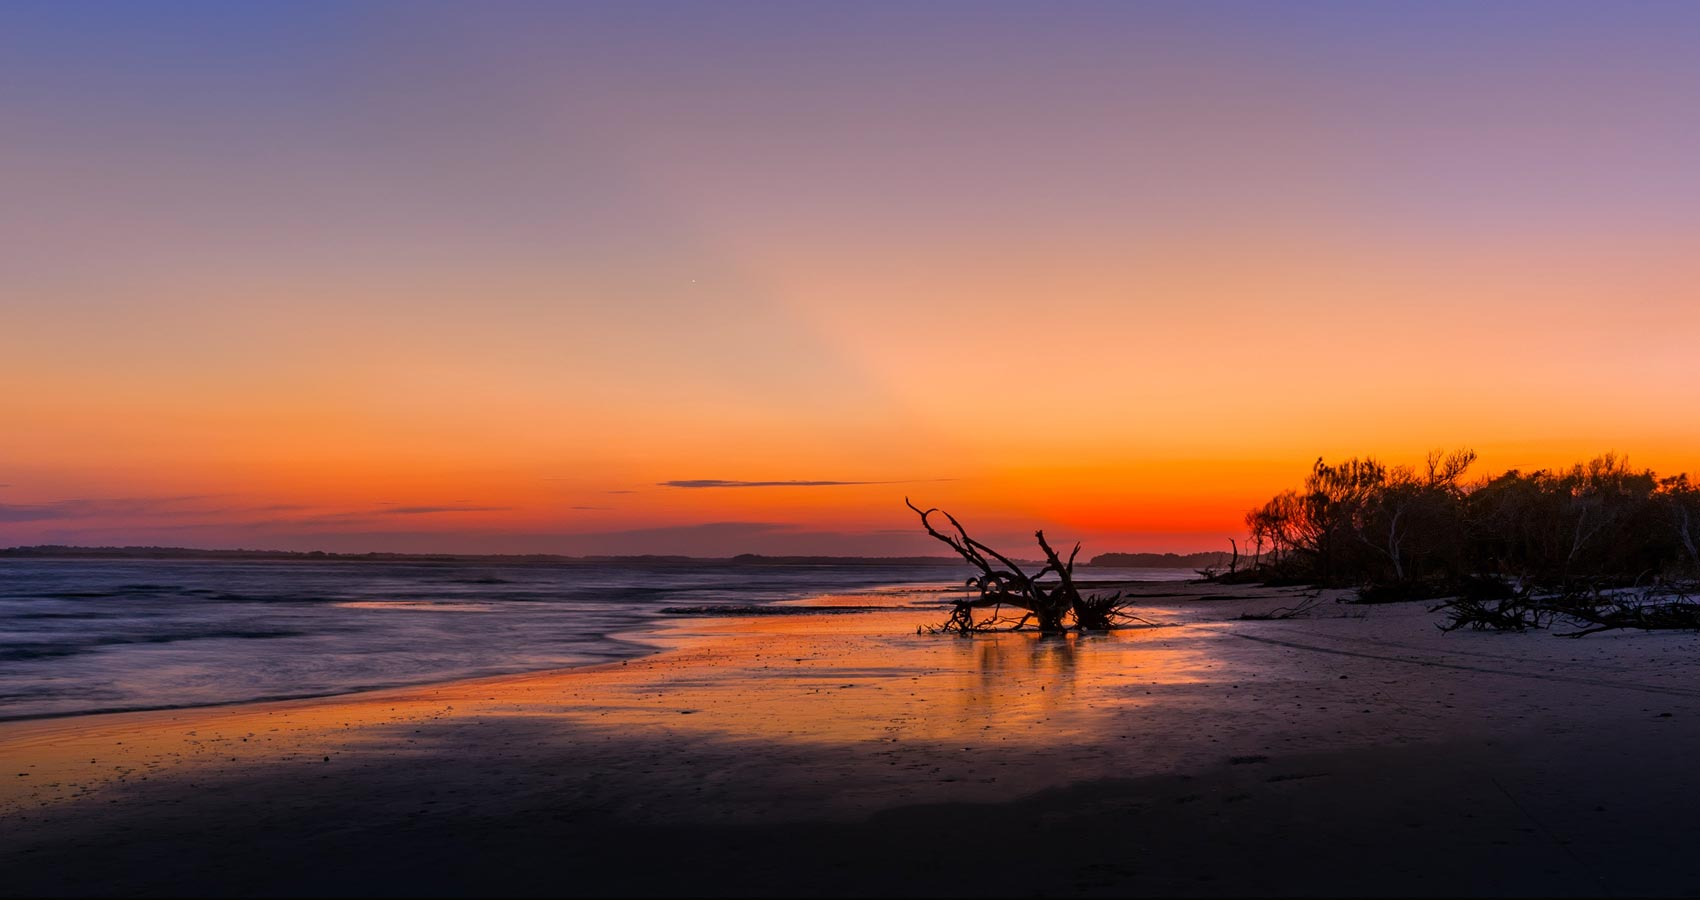 On Folly Beach, a poem by Kenneth Vincent Walker at Spillwords.com